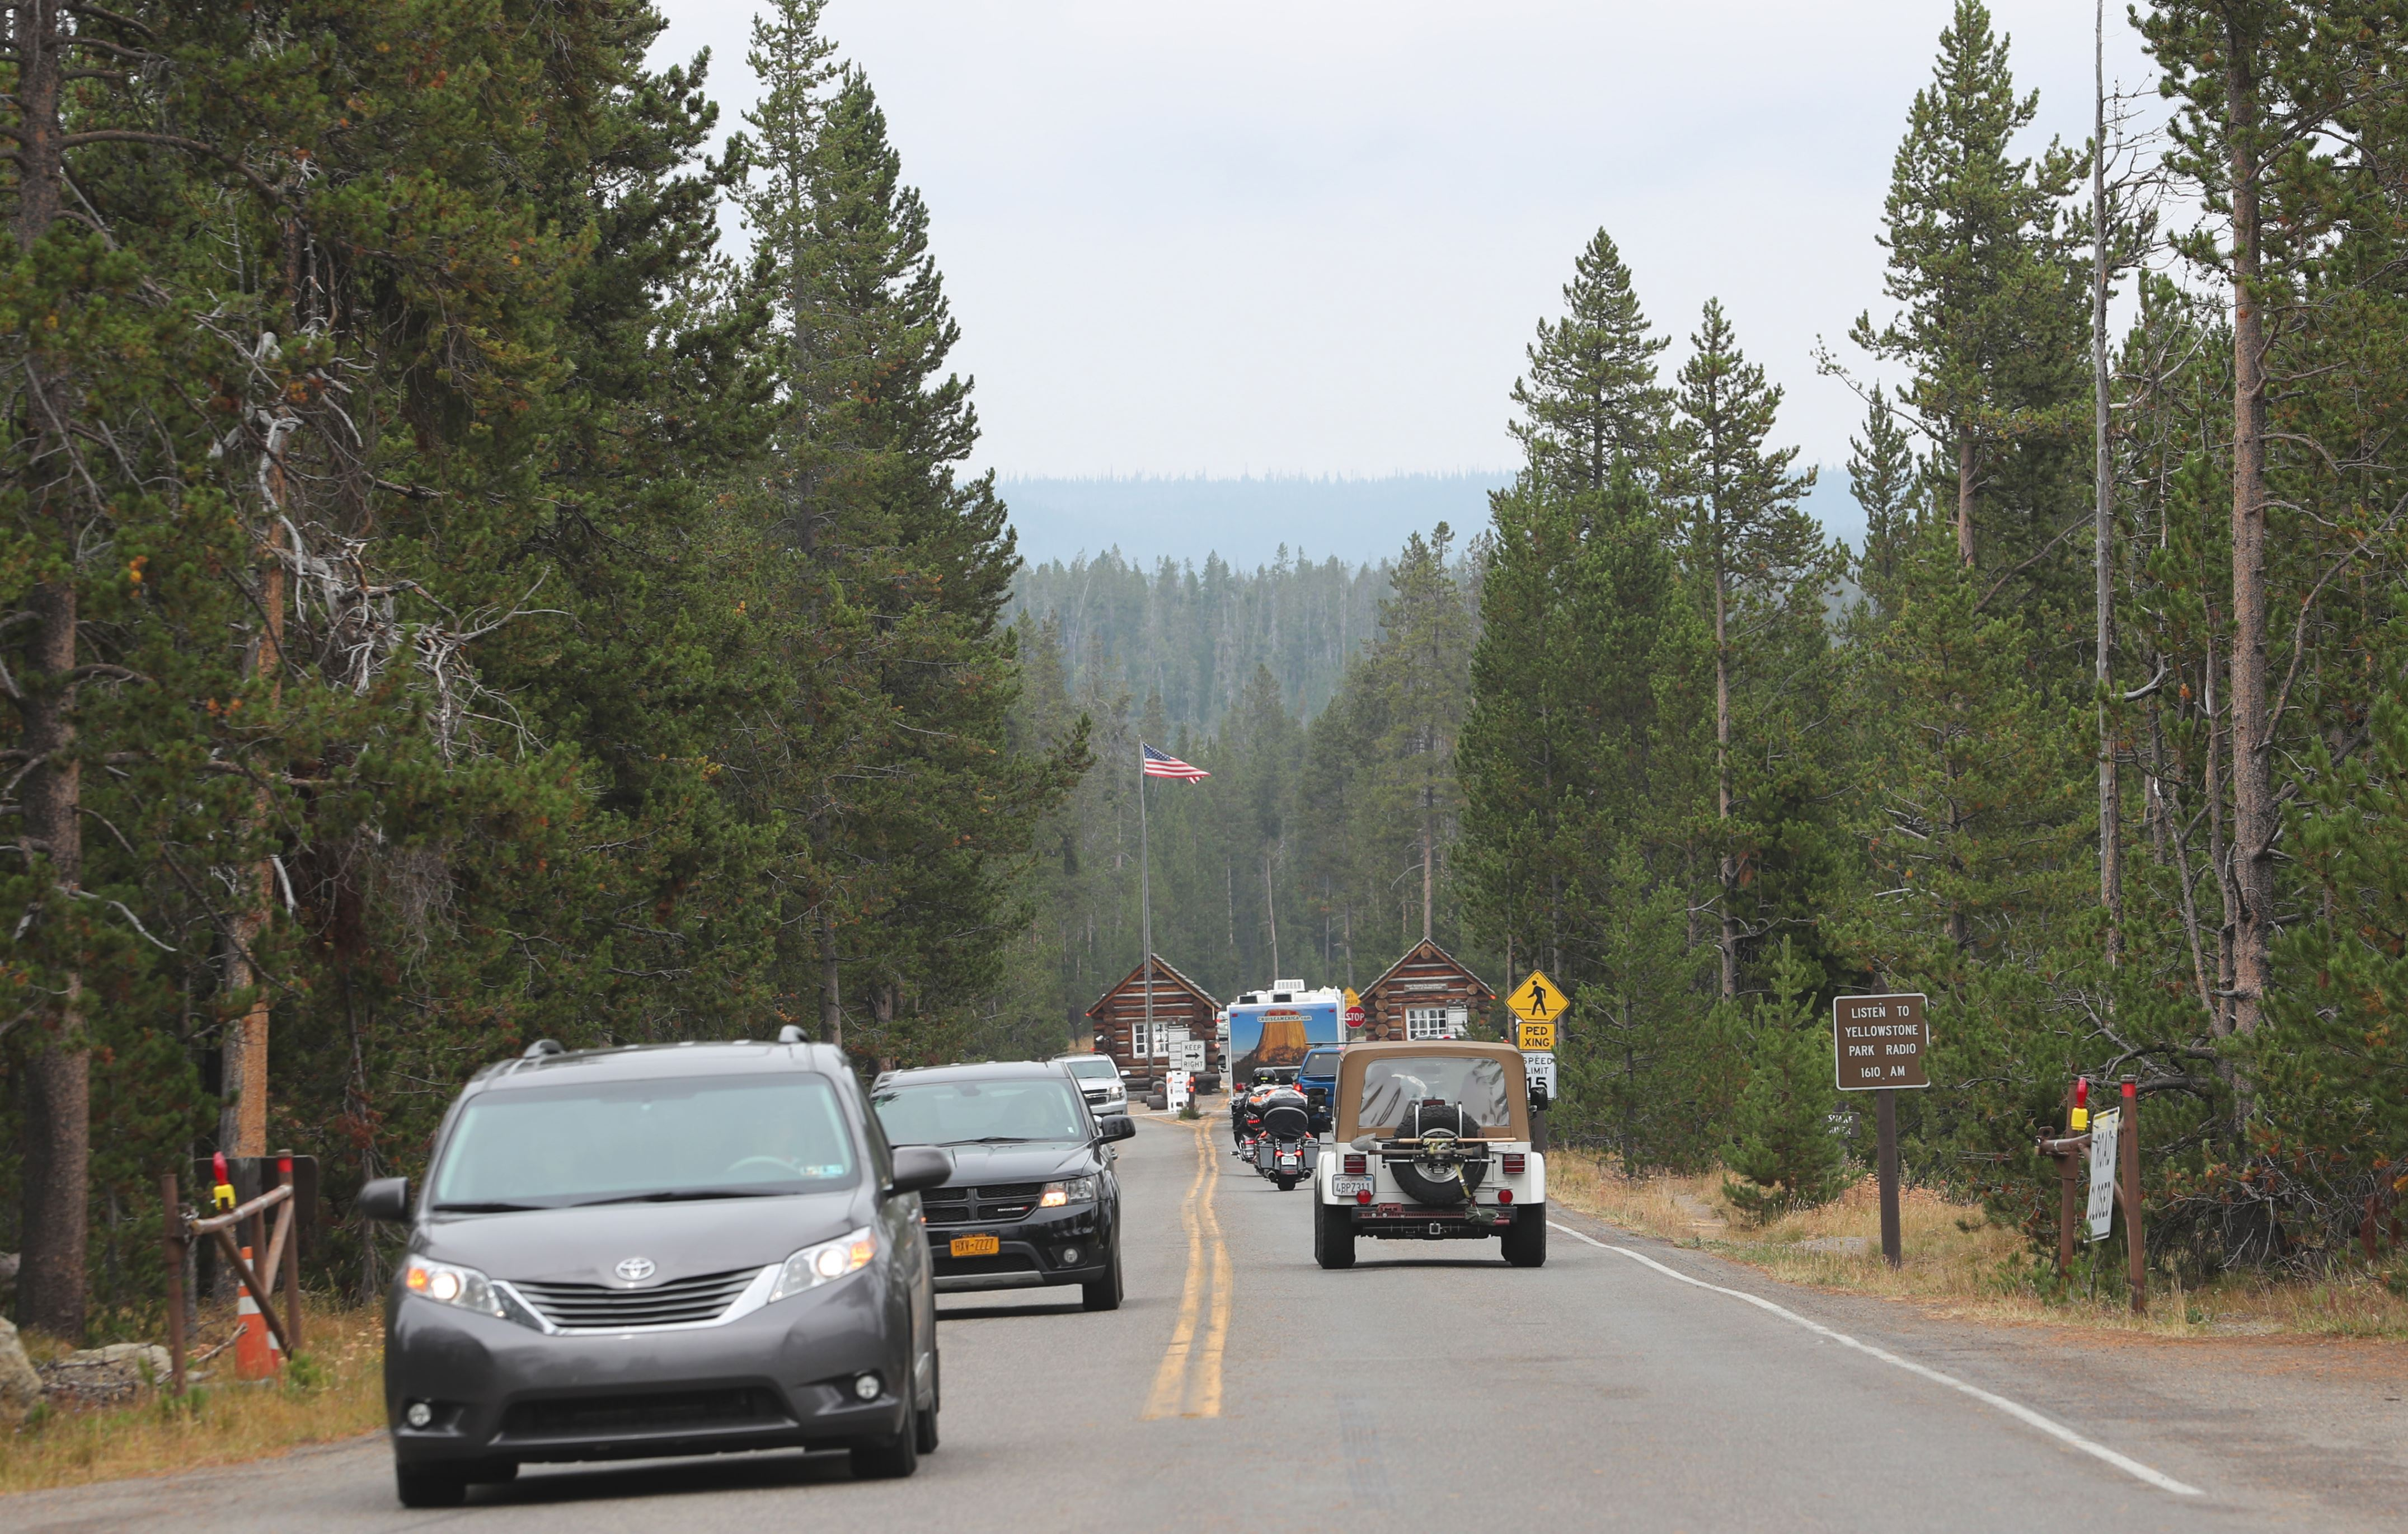 YELLOWSTONE, WY - AUGUST 22: Visitors come and go at the south entrance of Yellowstone National Park, Wyoming on August 22, 2018. Yellowstone is one of the most visited national parks in the United States. (Photo by George Frey/Getty Images)